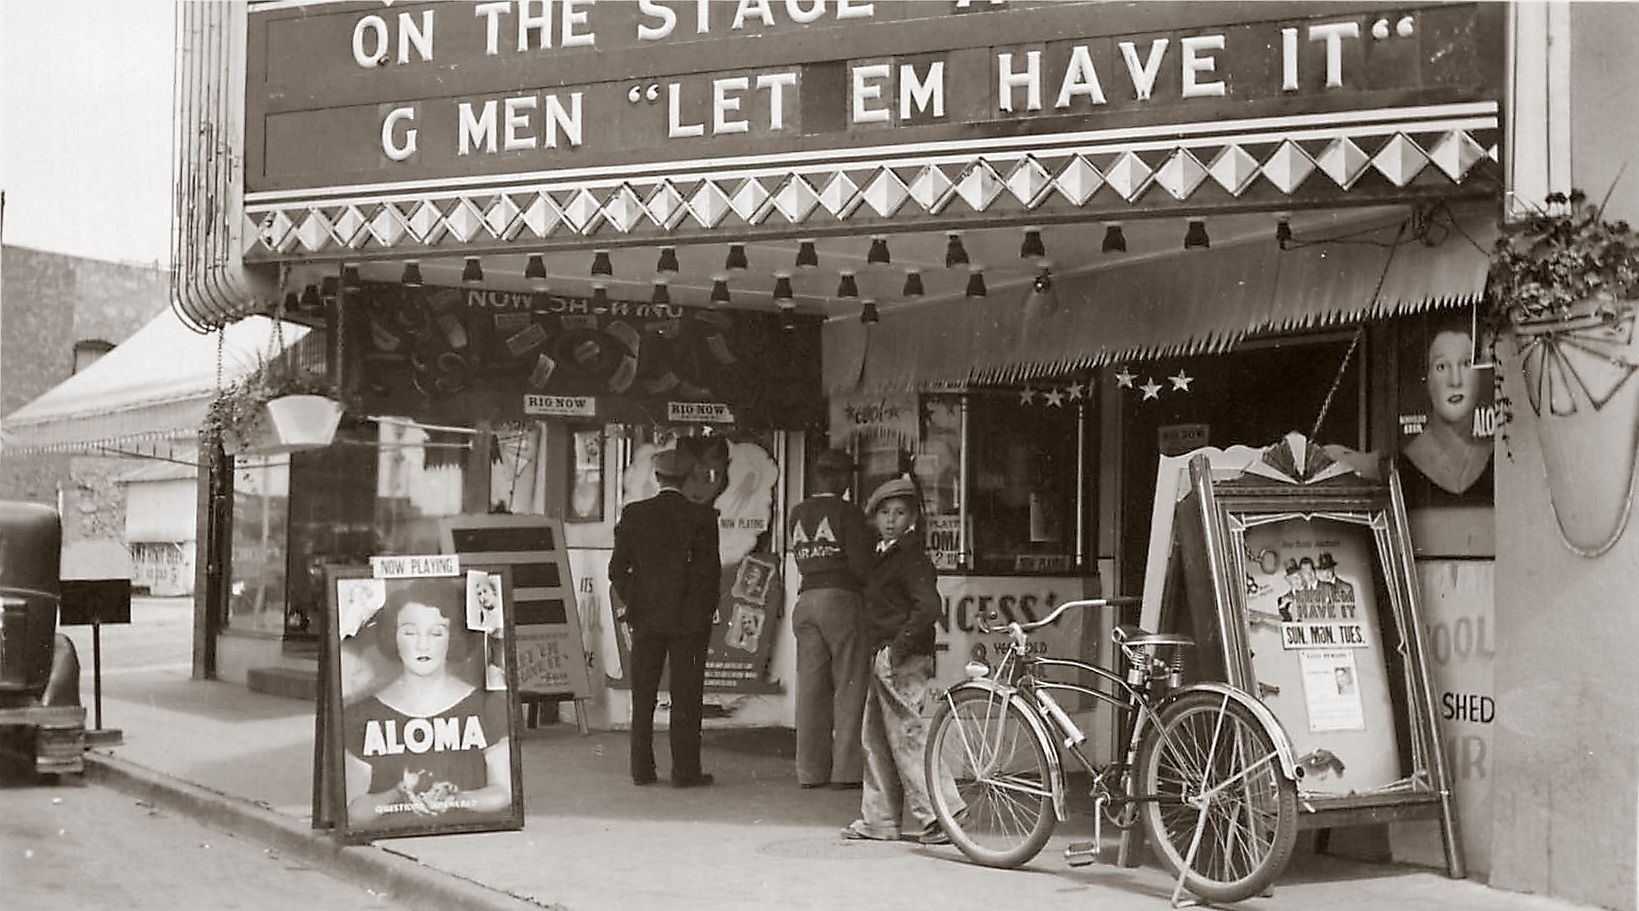 Pin by Rob Burns on My place G man, Broadway shows, Old